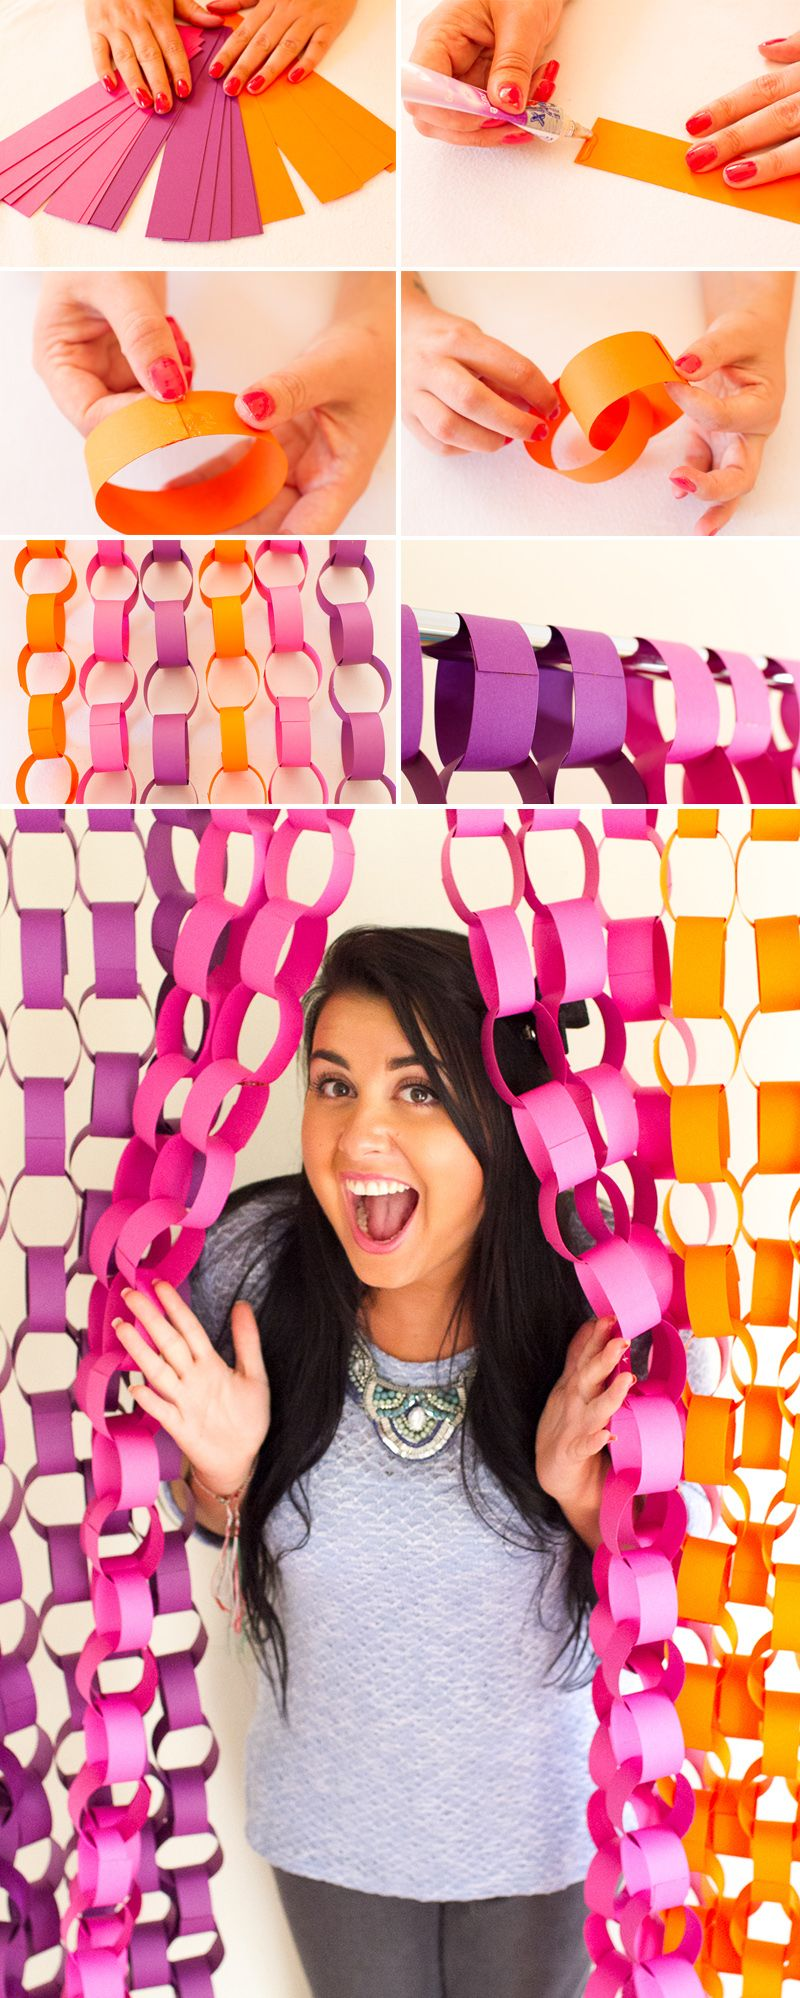 Diy paper chain photo booth backdrop tutorial craft